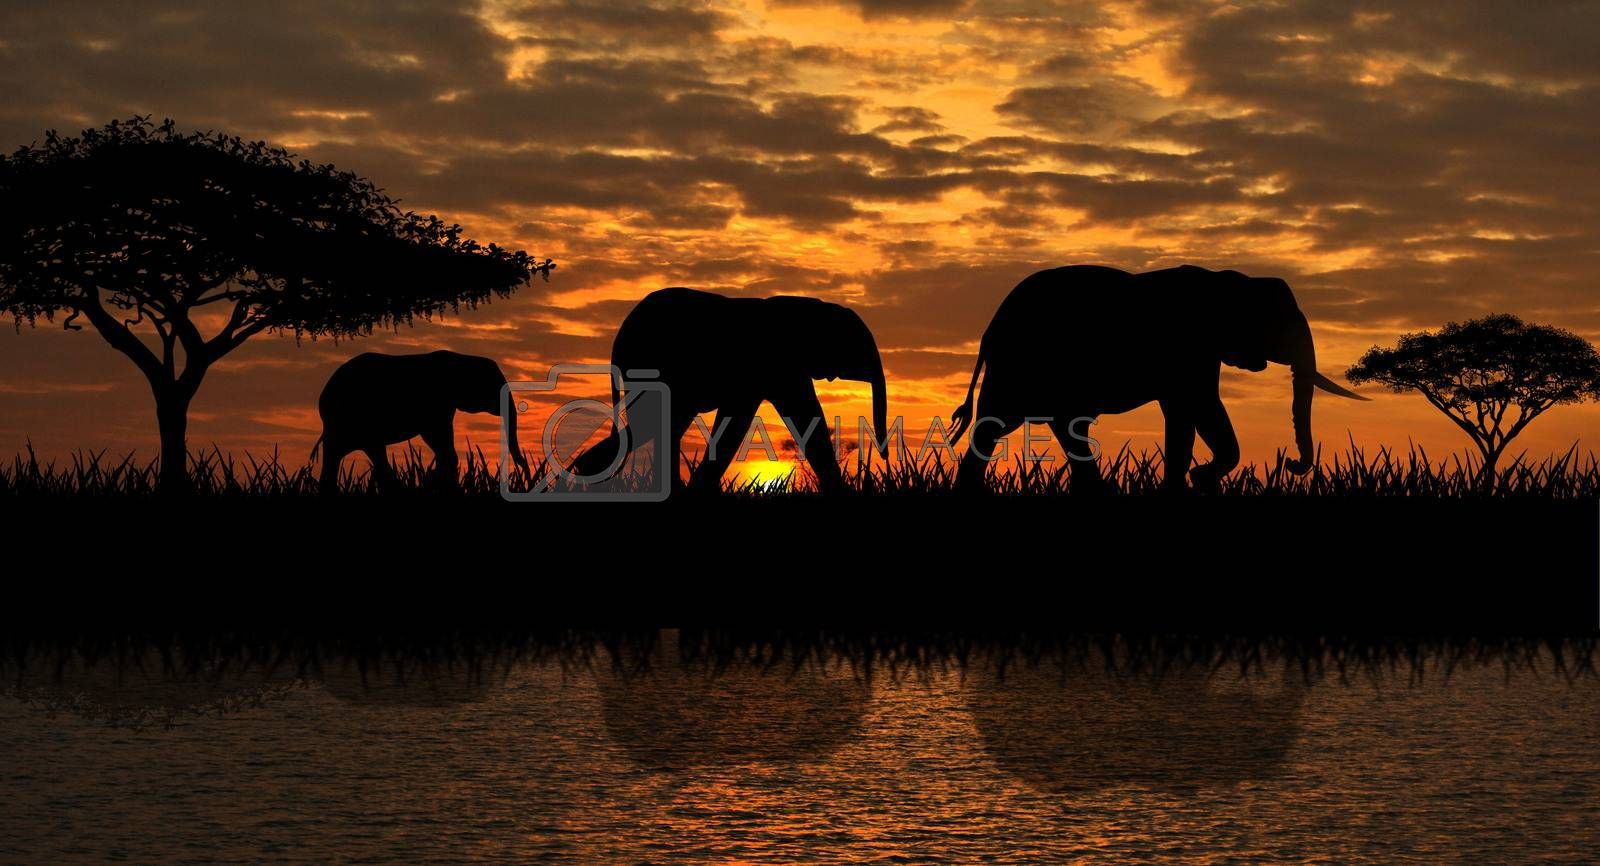 Silhouettes of elephants on a sunset background. Elephants against the backdrop of the sunset and the river.